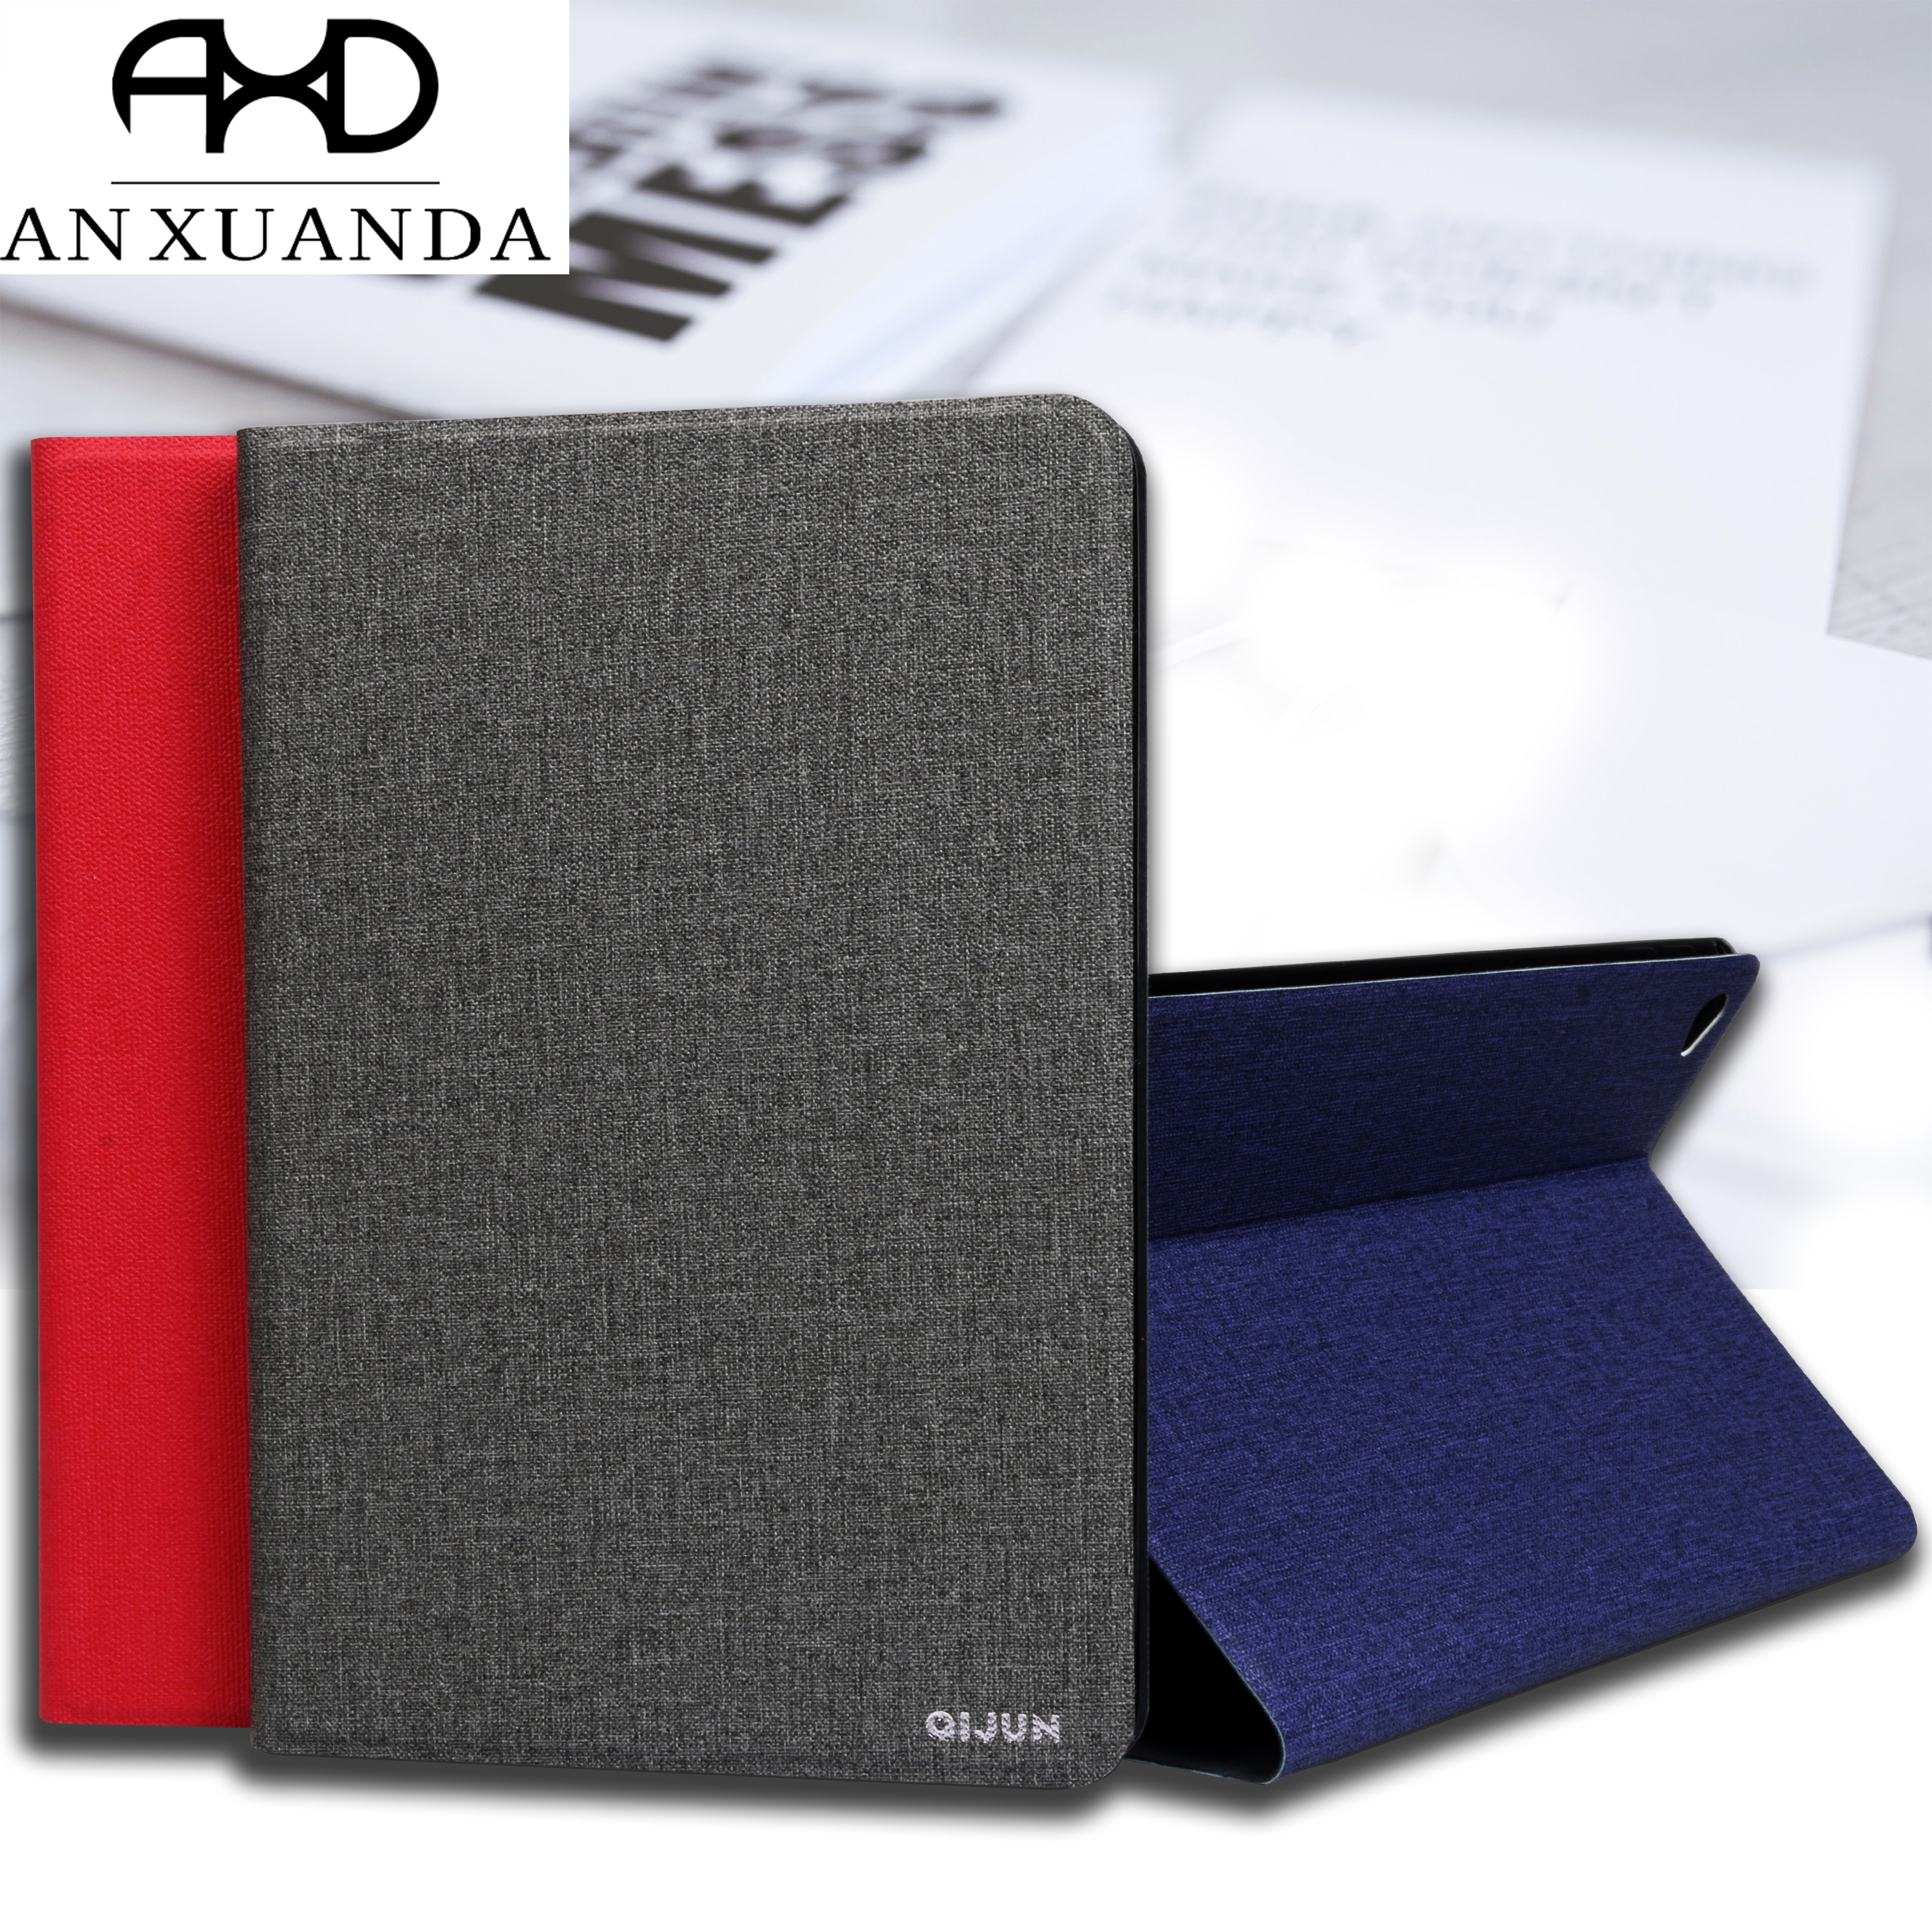 For Samsung Galaxy Note 10.1 2014 Edition P600 QIJUN Case For Galaxy SM-P605 SM-P601 Case Slim Flip Cover Soft Protective Shell